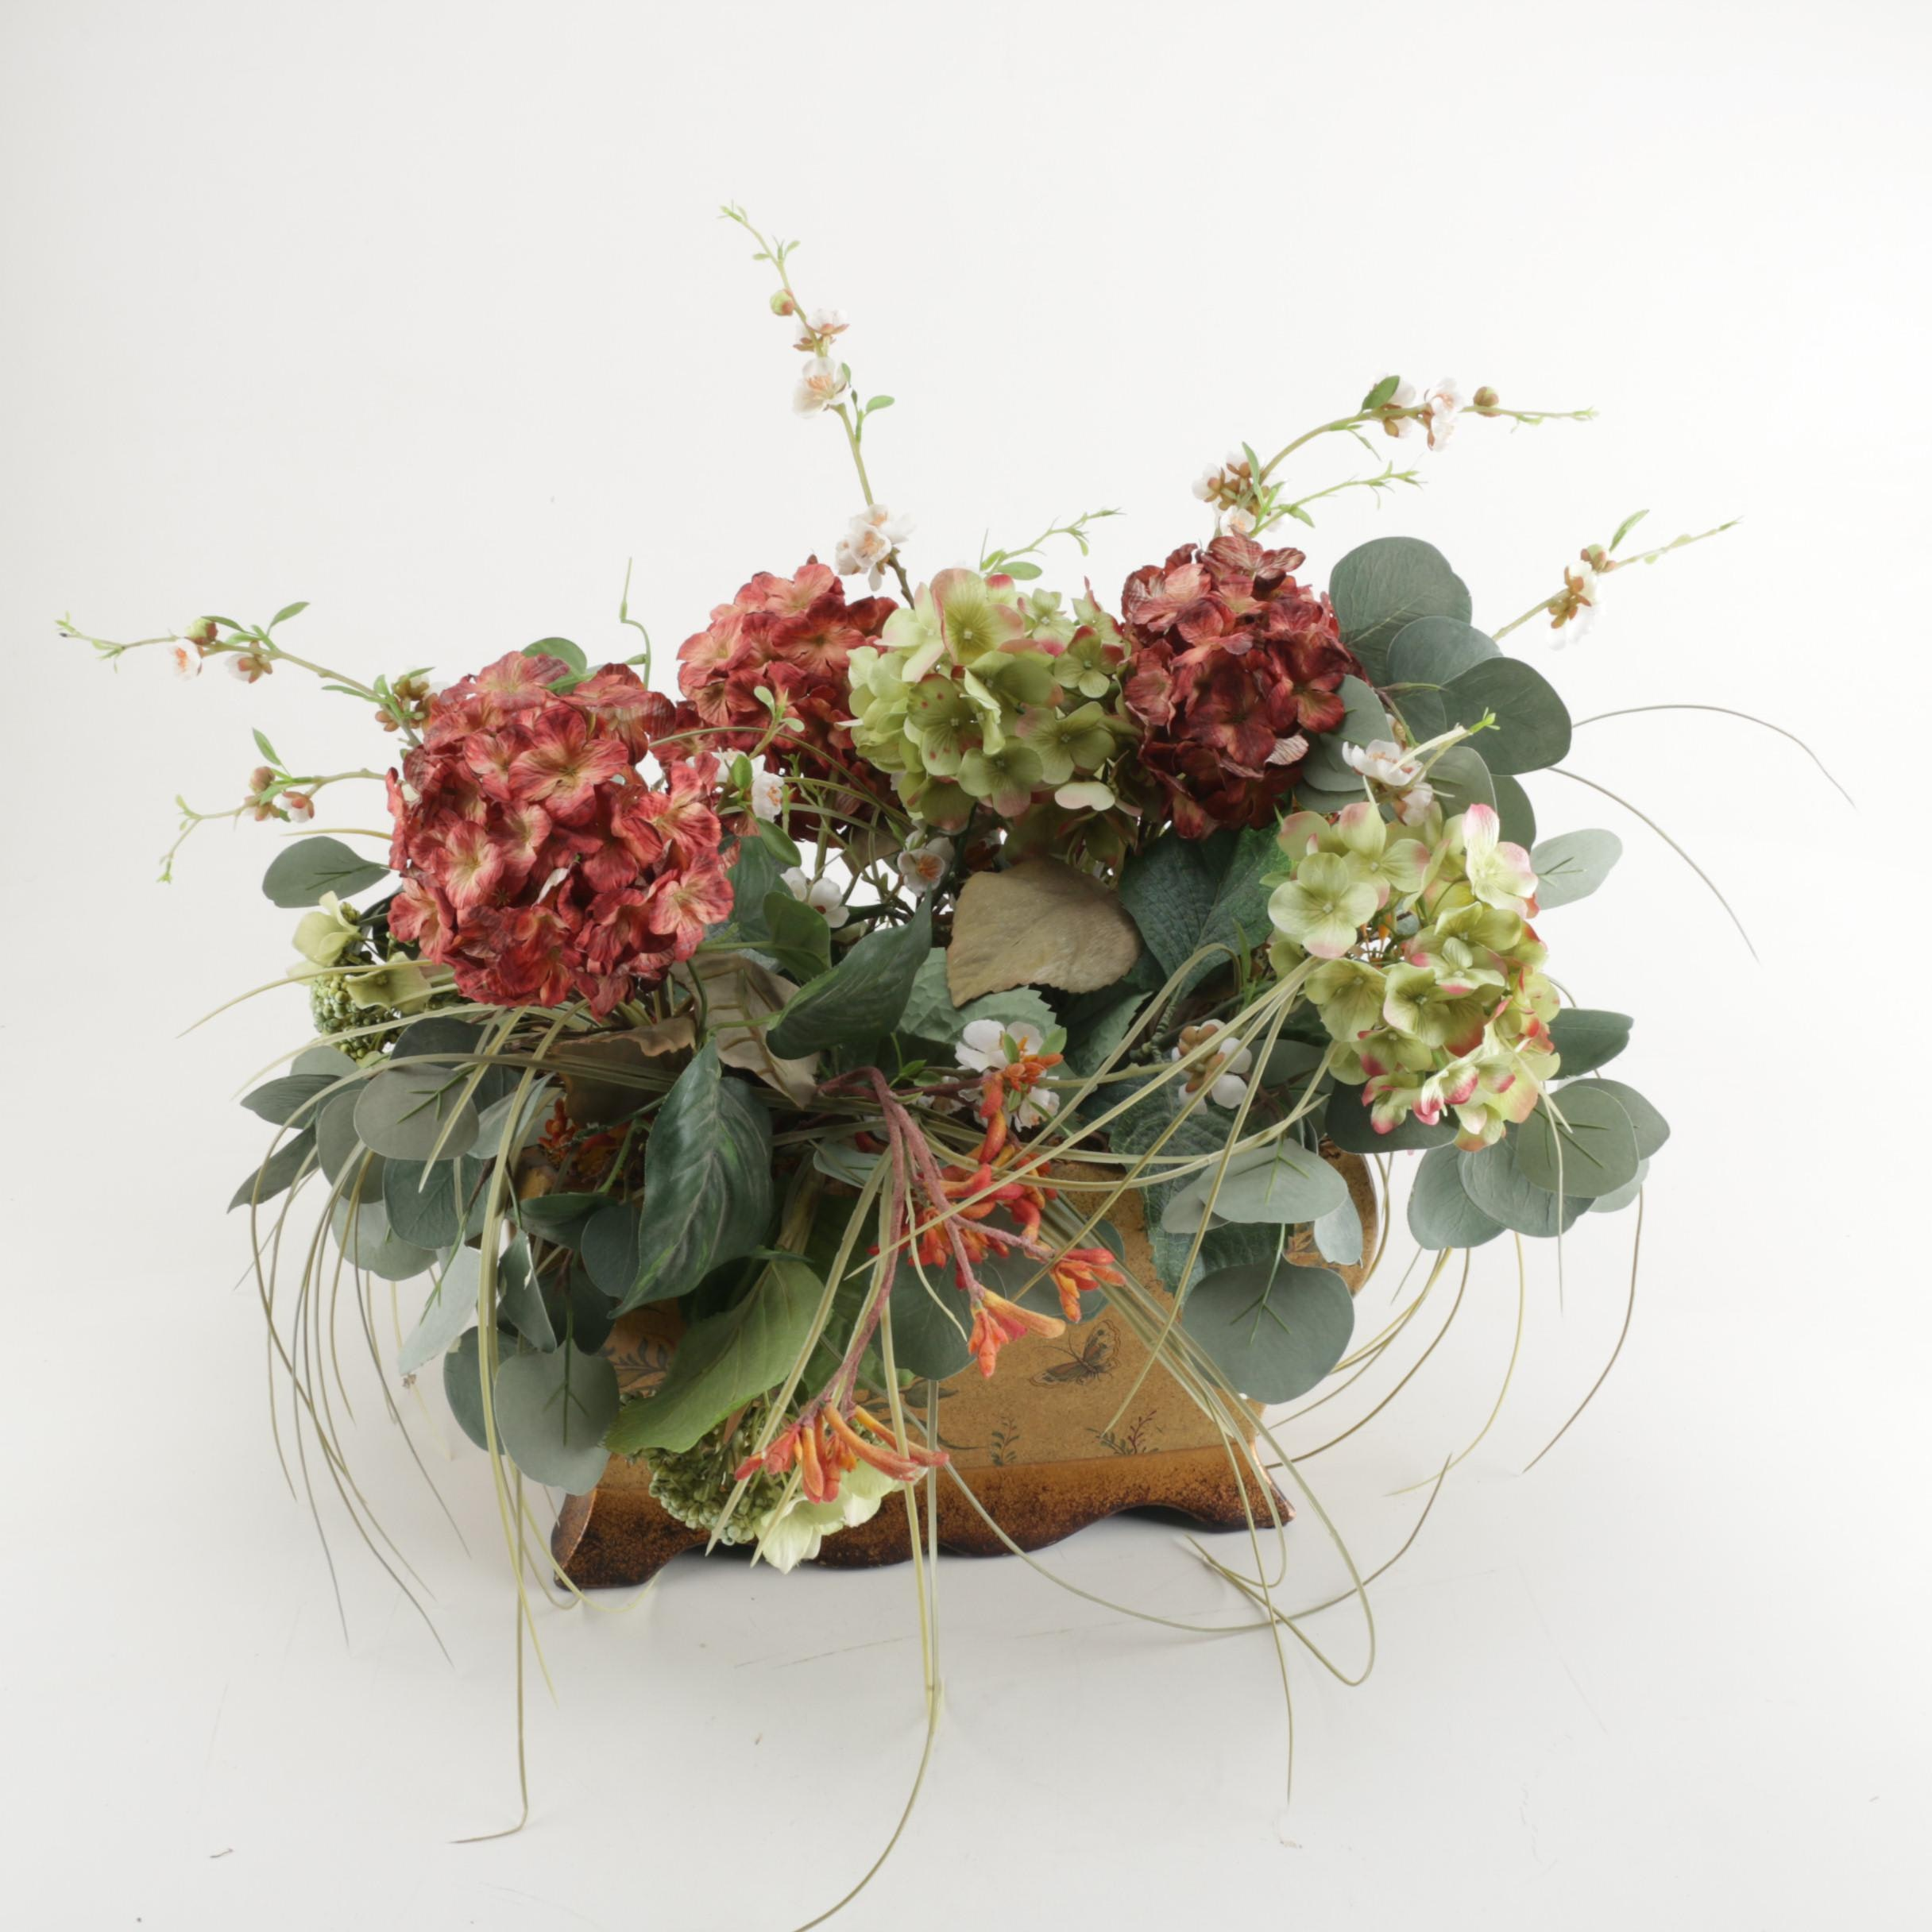 Ceramic Planter With Artificial Flowers